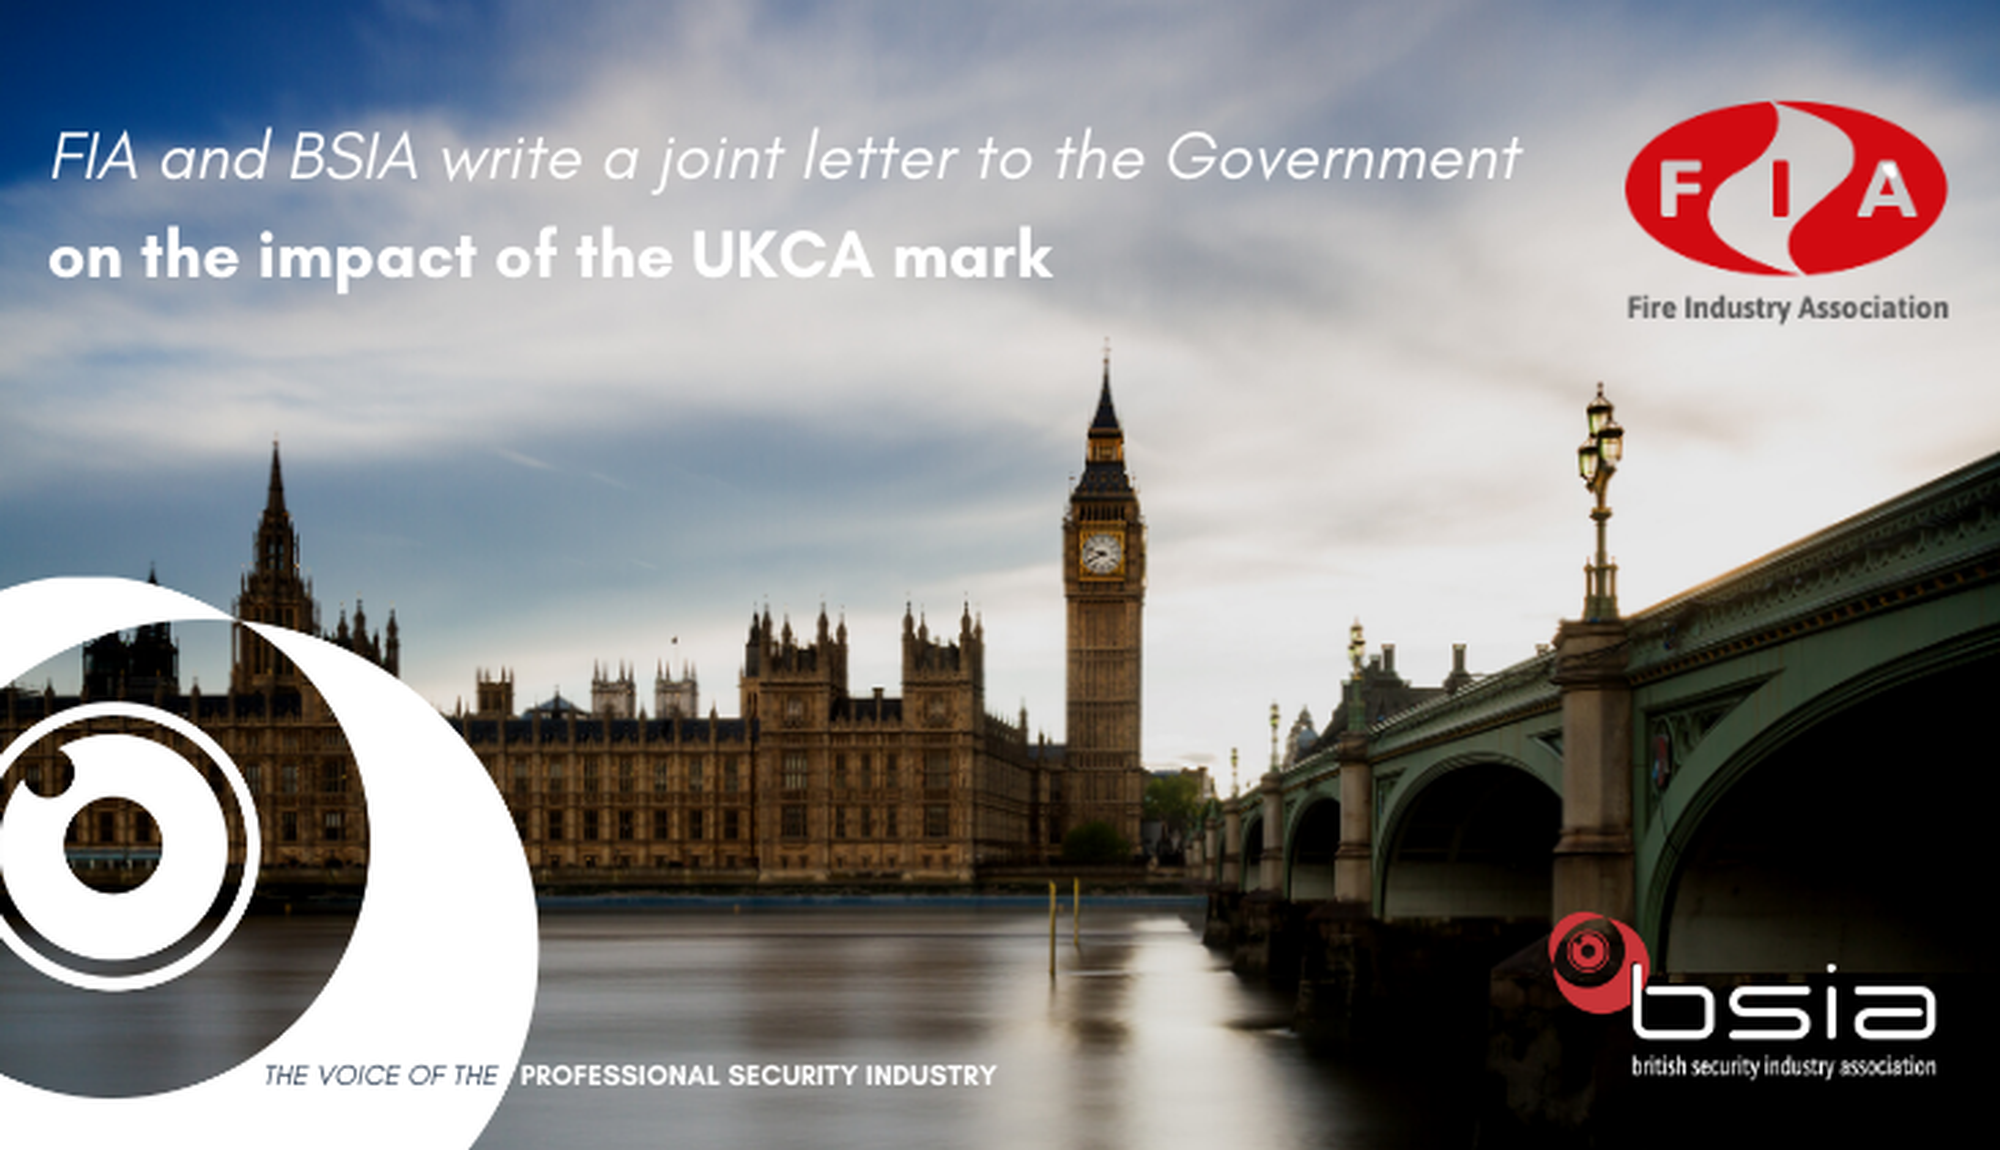 FIA and BSIA write a joint letter to the Government on the impact of the UKCA mark